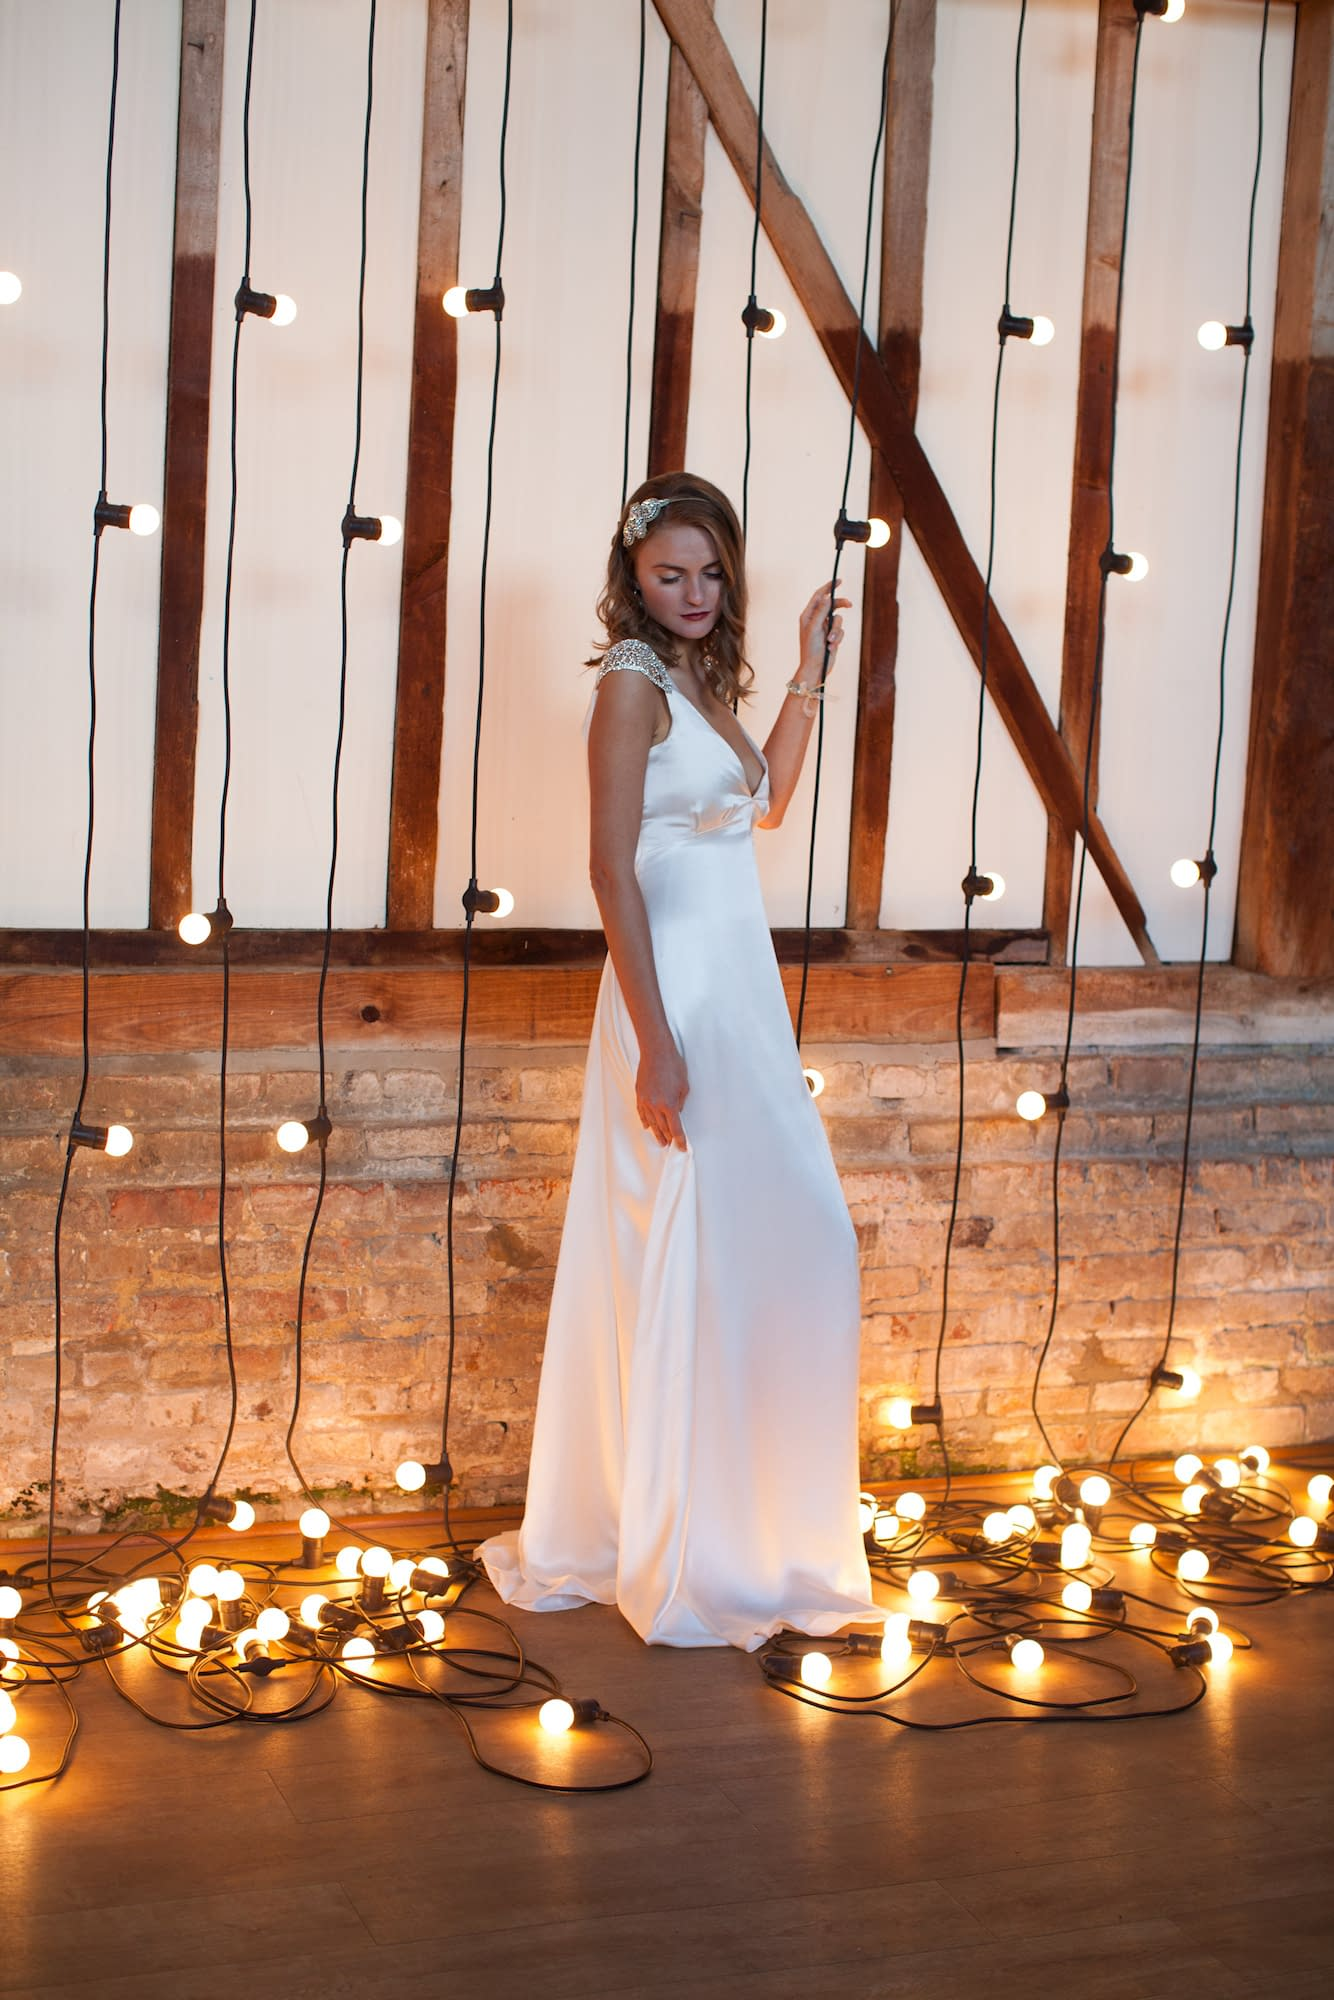 Festoon cascade at Bonhams Barn Hampshire England with bride standing in front of it surrounding by lightbulbs cascading and puddling on the floor